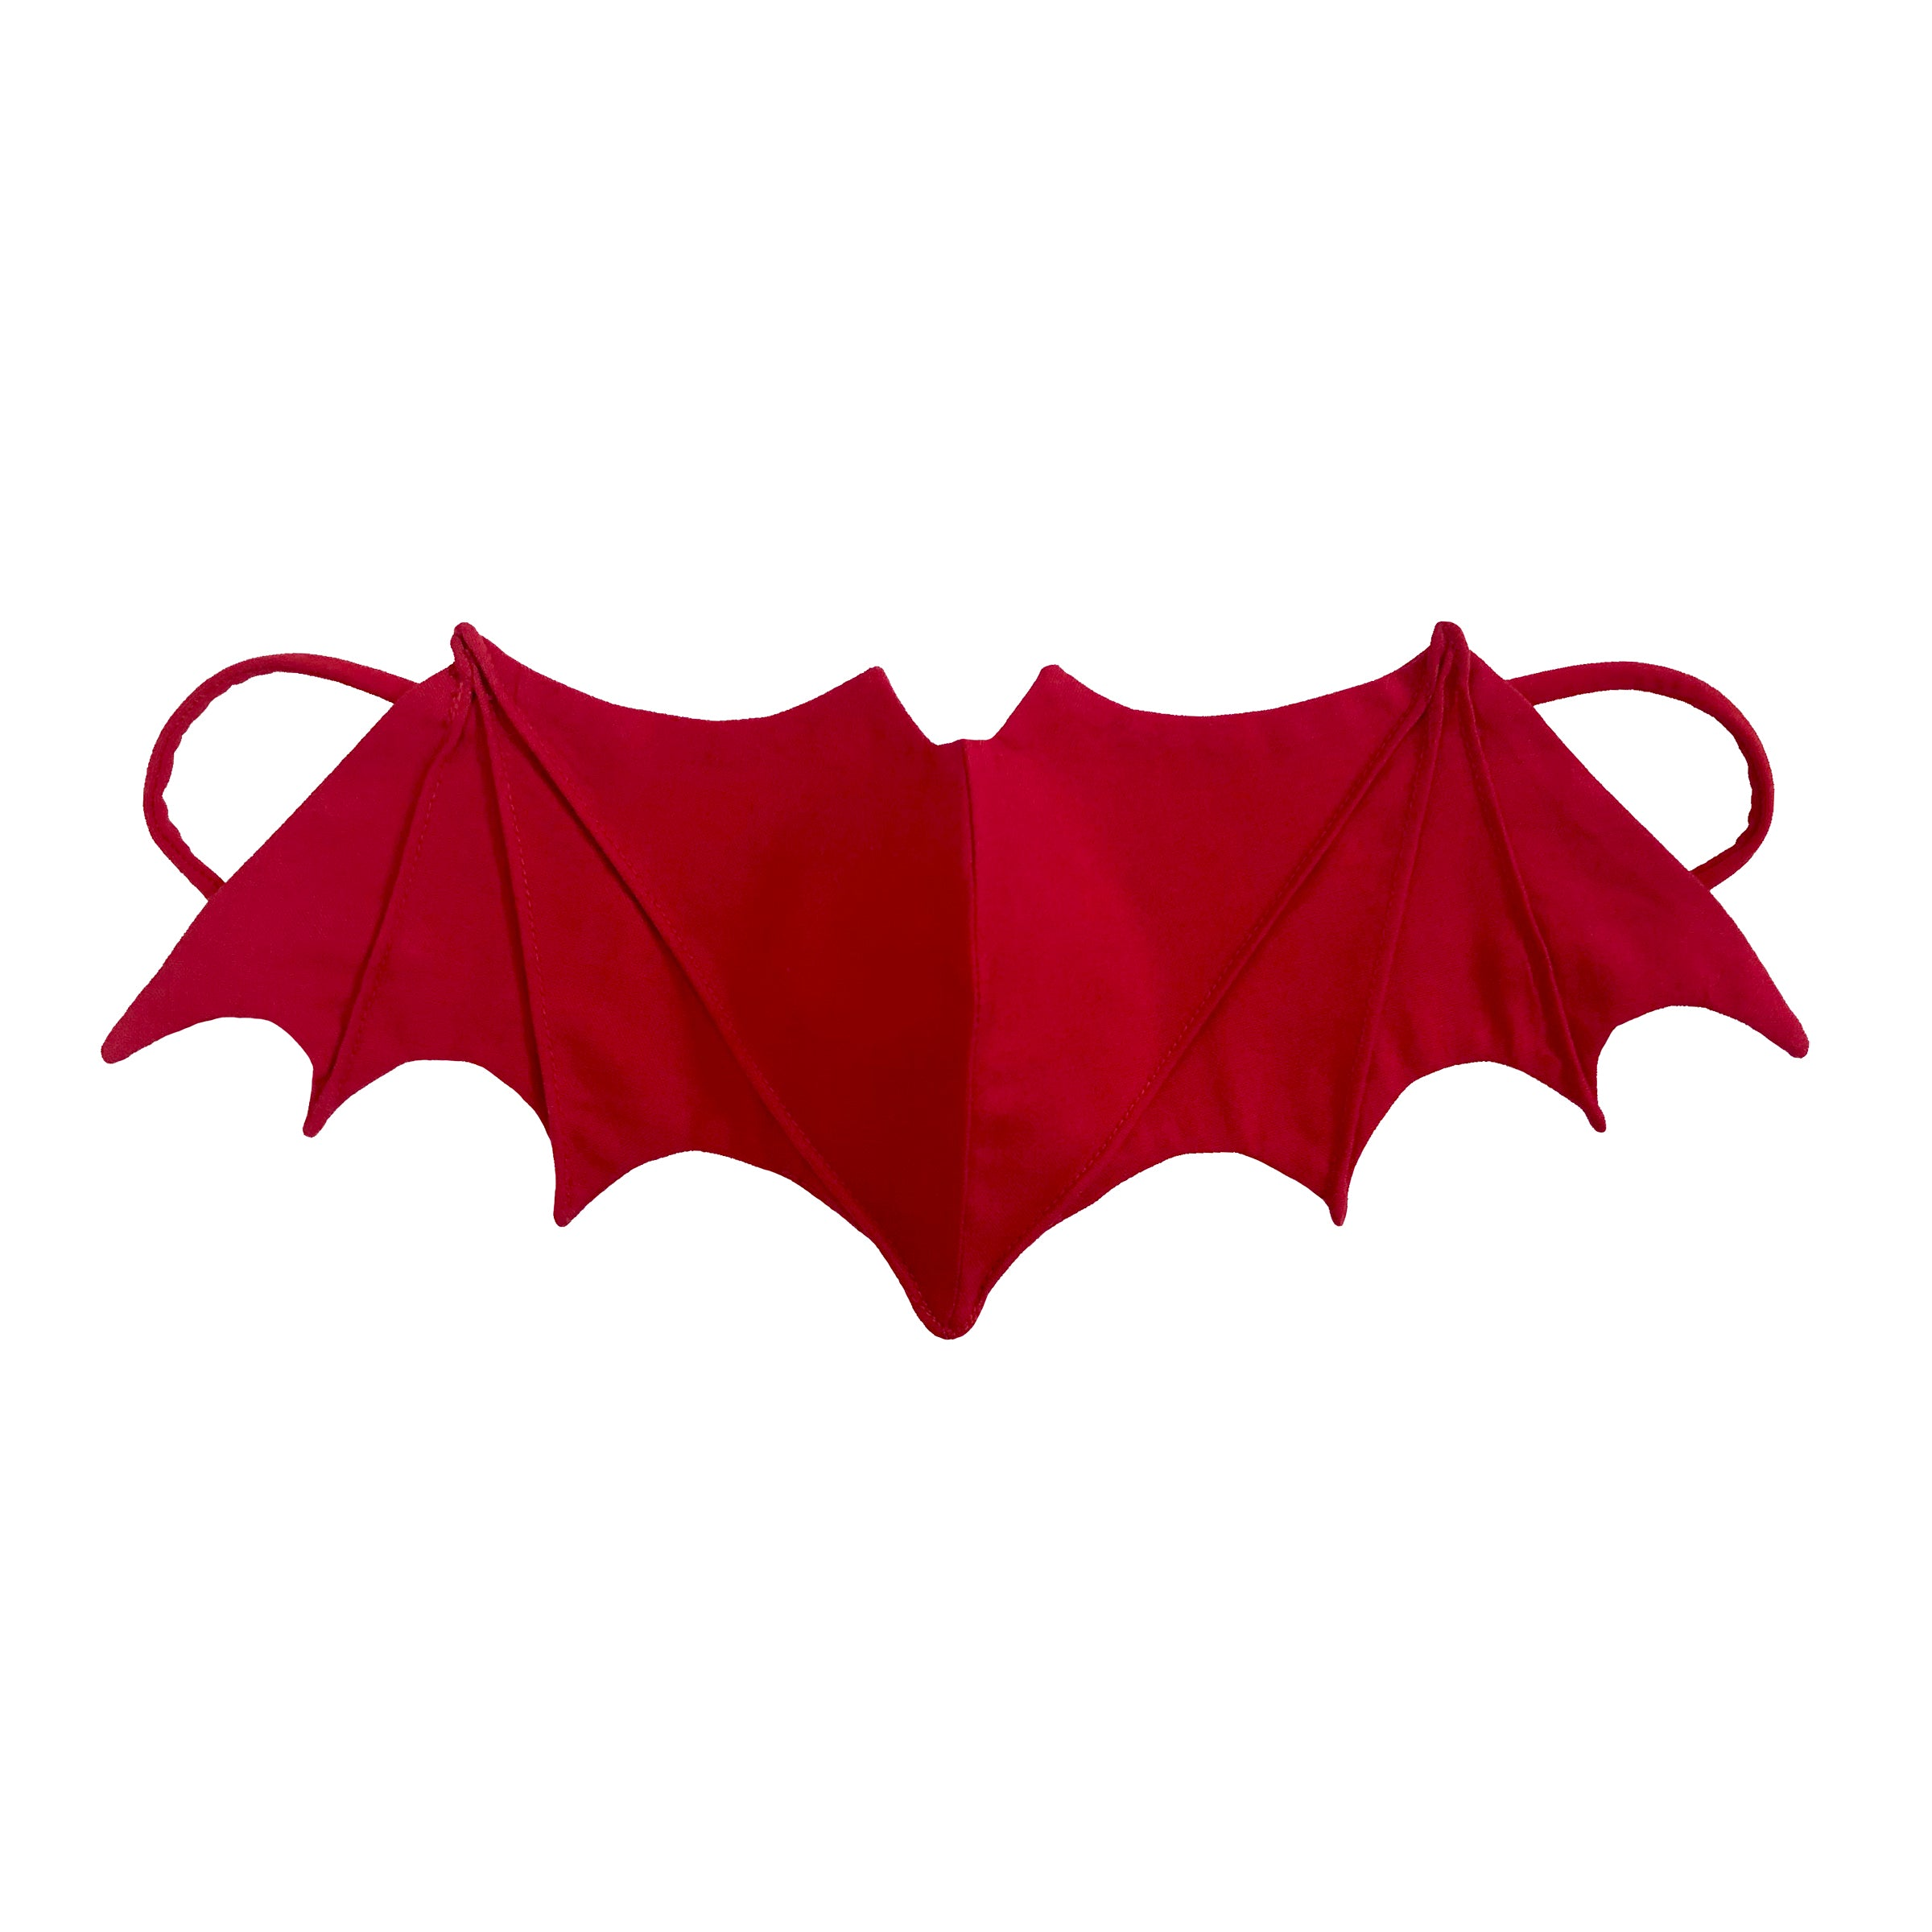 Red Bat Mask